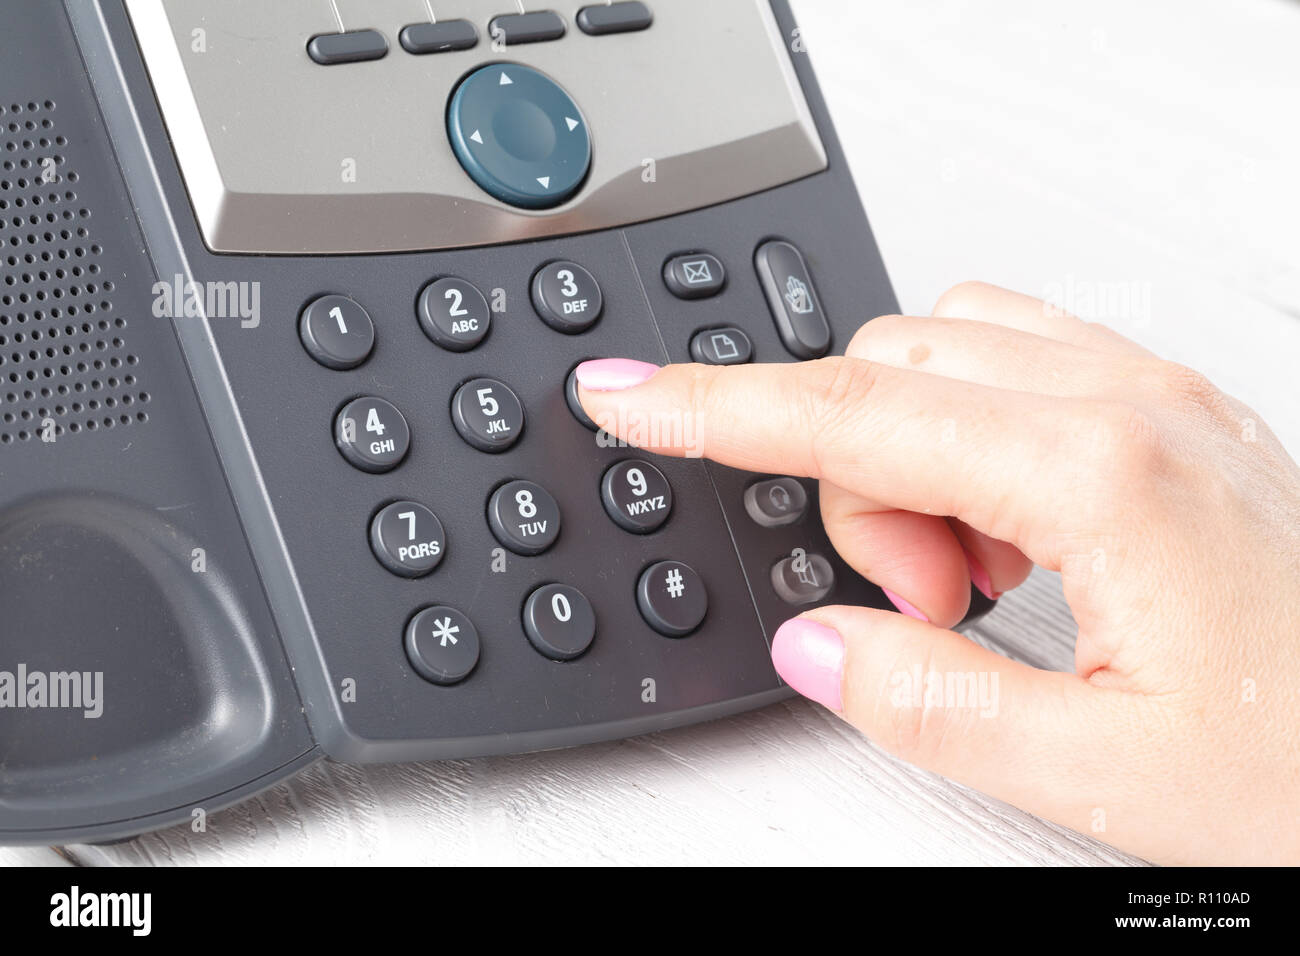 dialing voip phone in the office, keyboard and monitor detail in the background - Stock Image